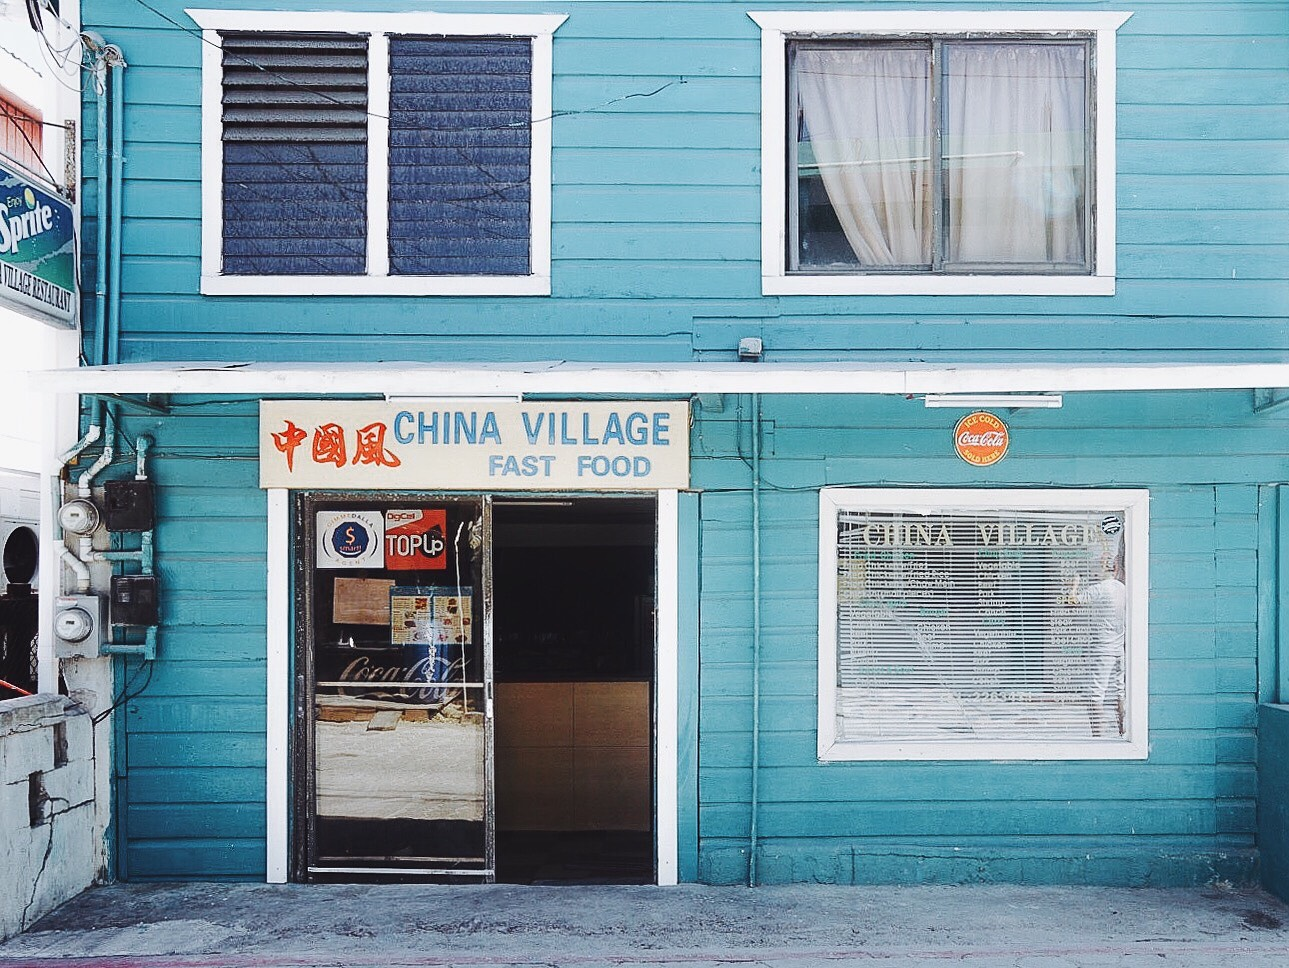 The shops of Belize were saturated with color. This teal shopfront was my favorite - the color of the ocean just a block away. I wish I had tried some Belizean Chinese food because there's a large Chinese population here.